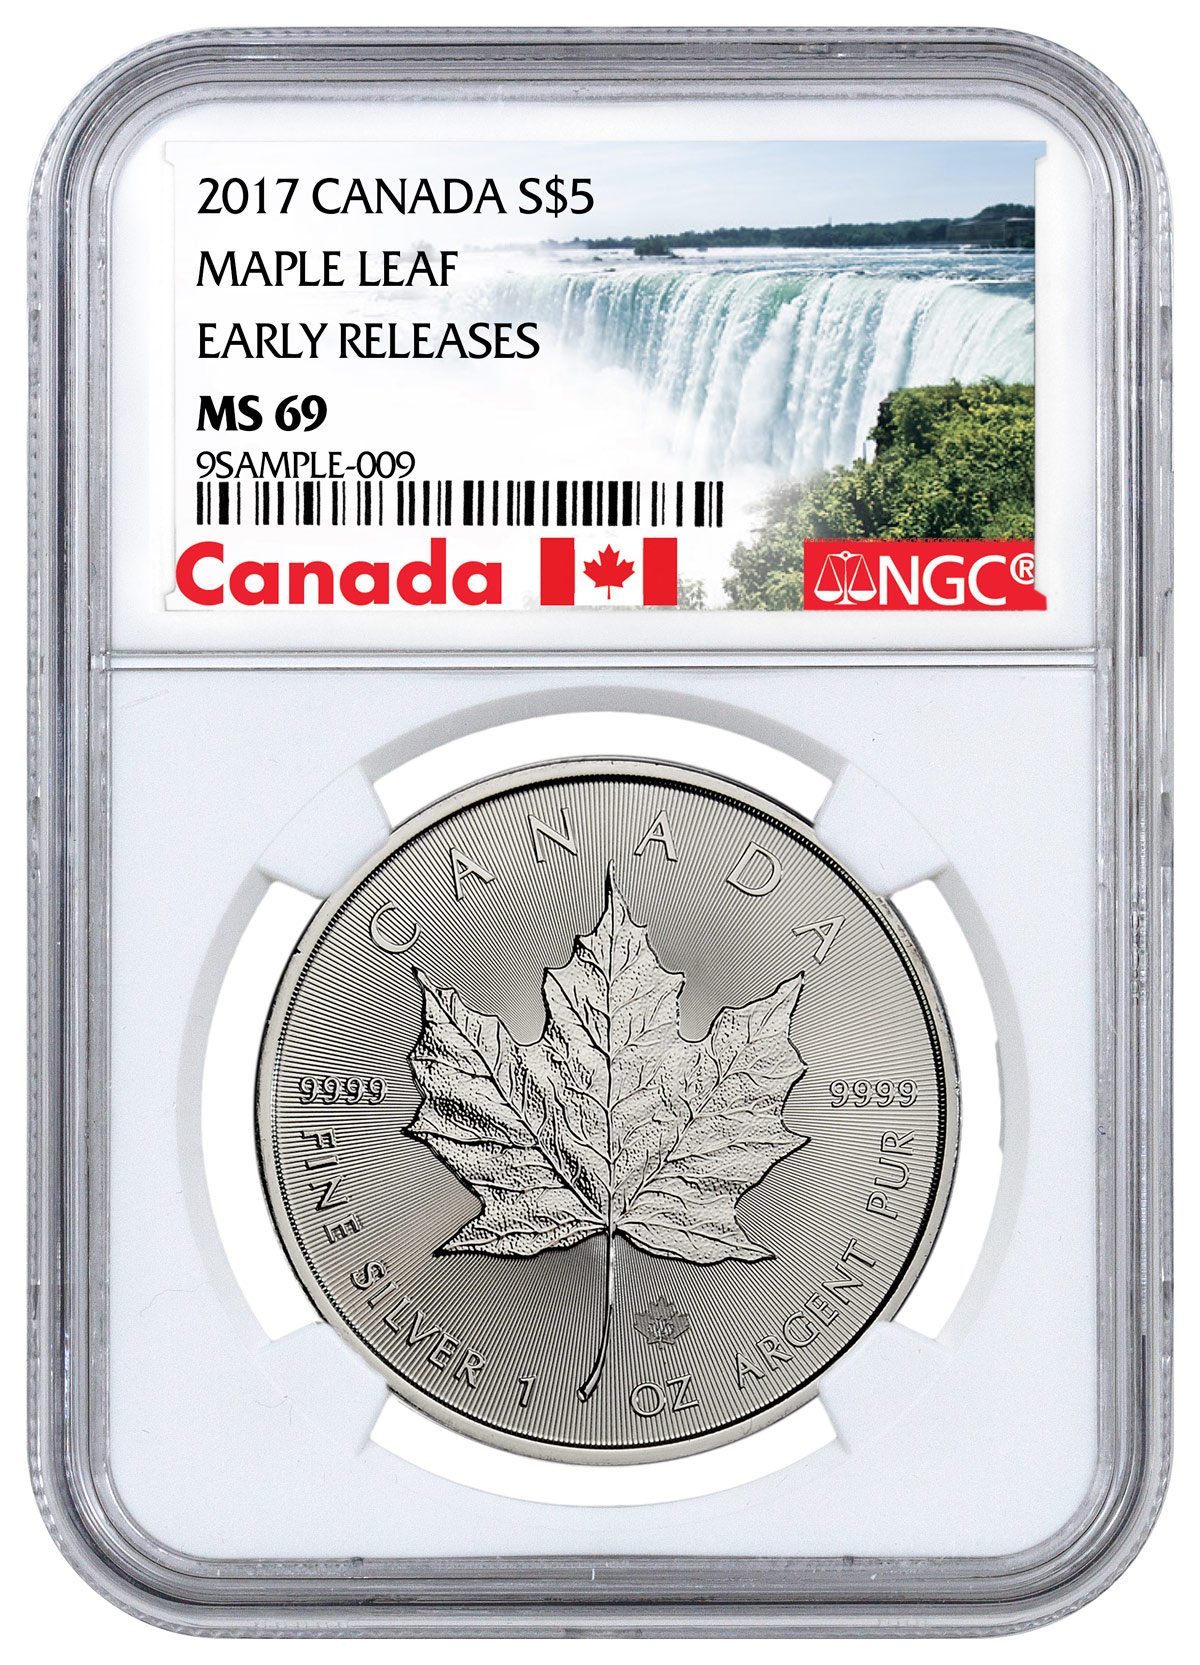 2017 Canada 1 oz Silver Maple Leaf $5 NGC MS69 ER (Exclusive Canada Label)